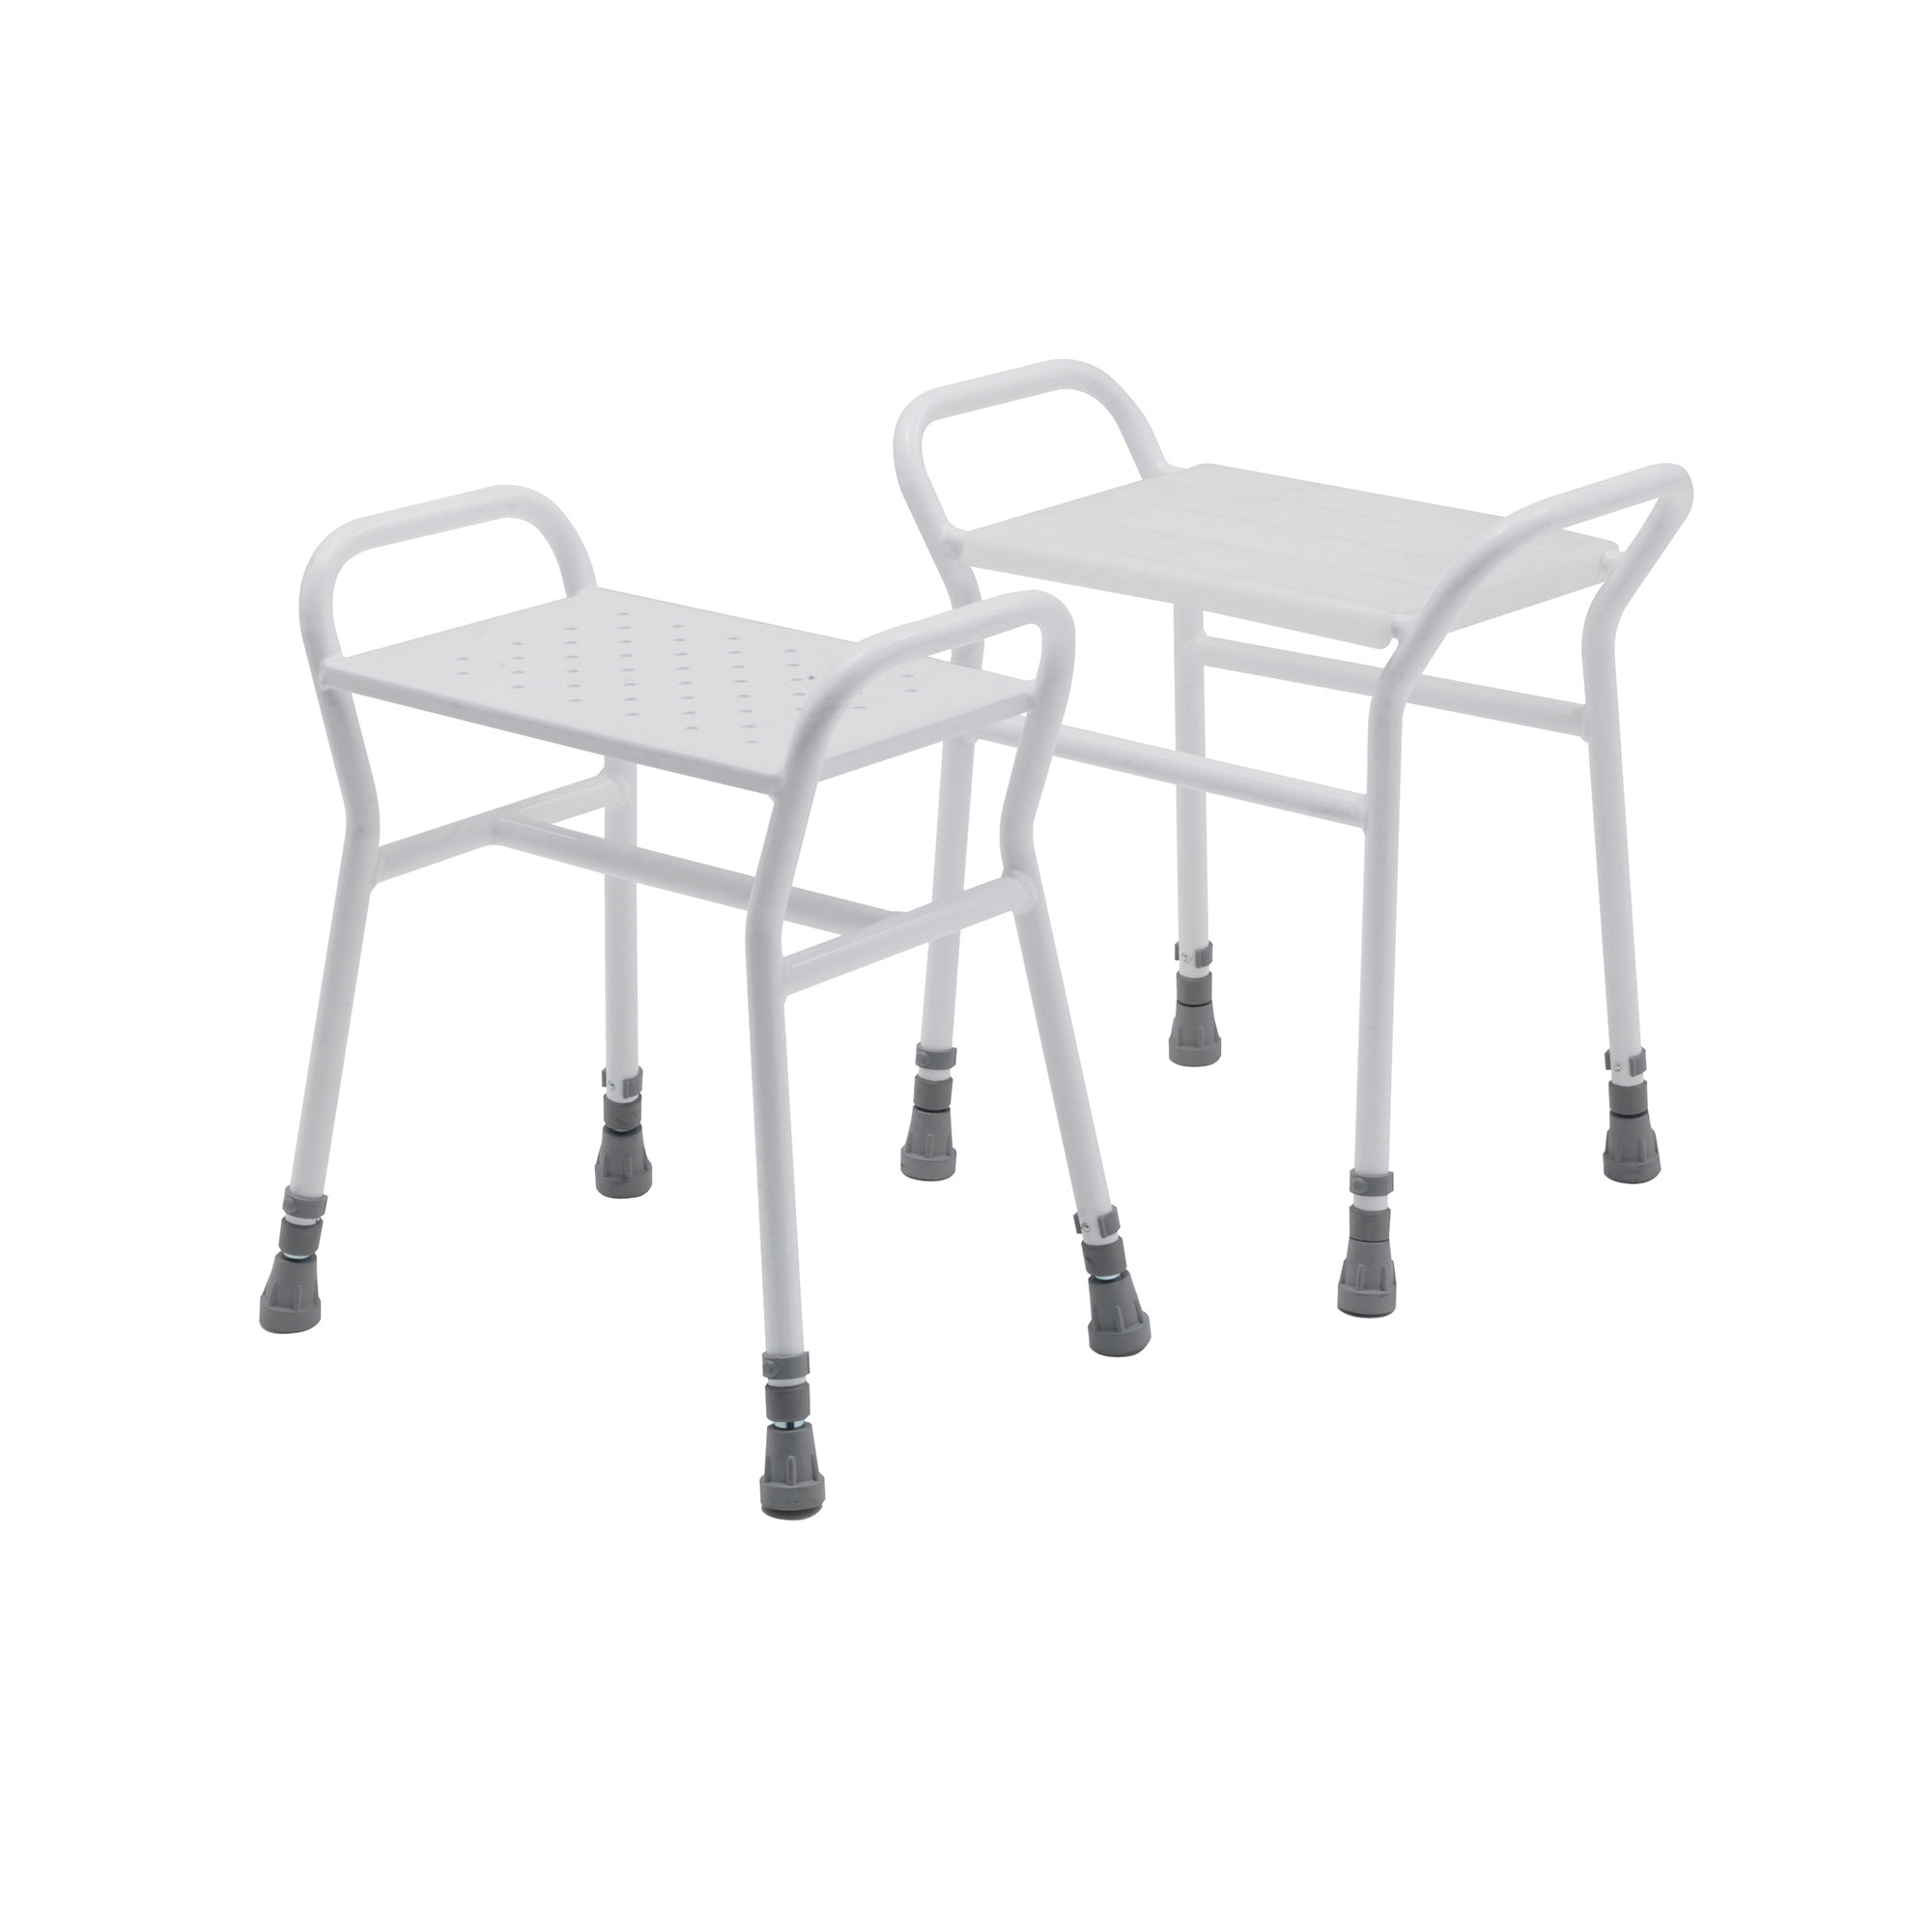 4216P Belmont Adjustable Shower Stool with a Plastic Clip